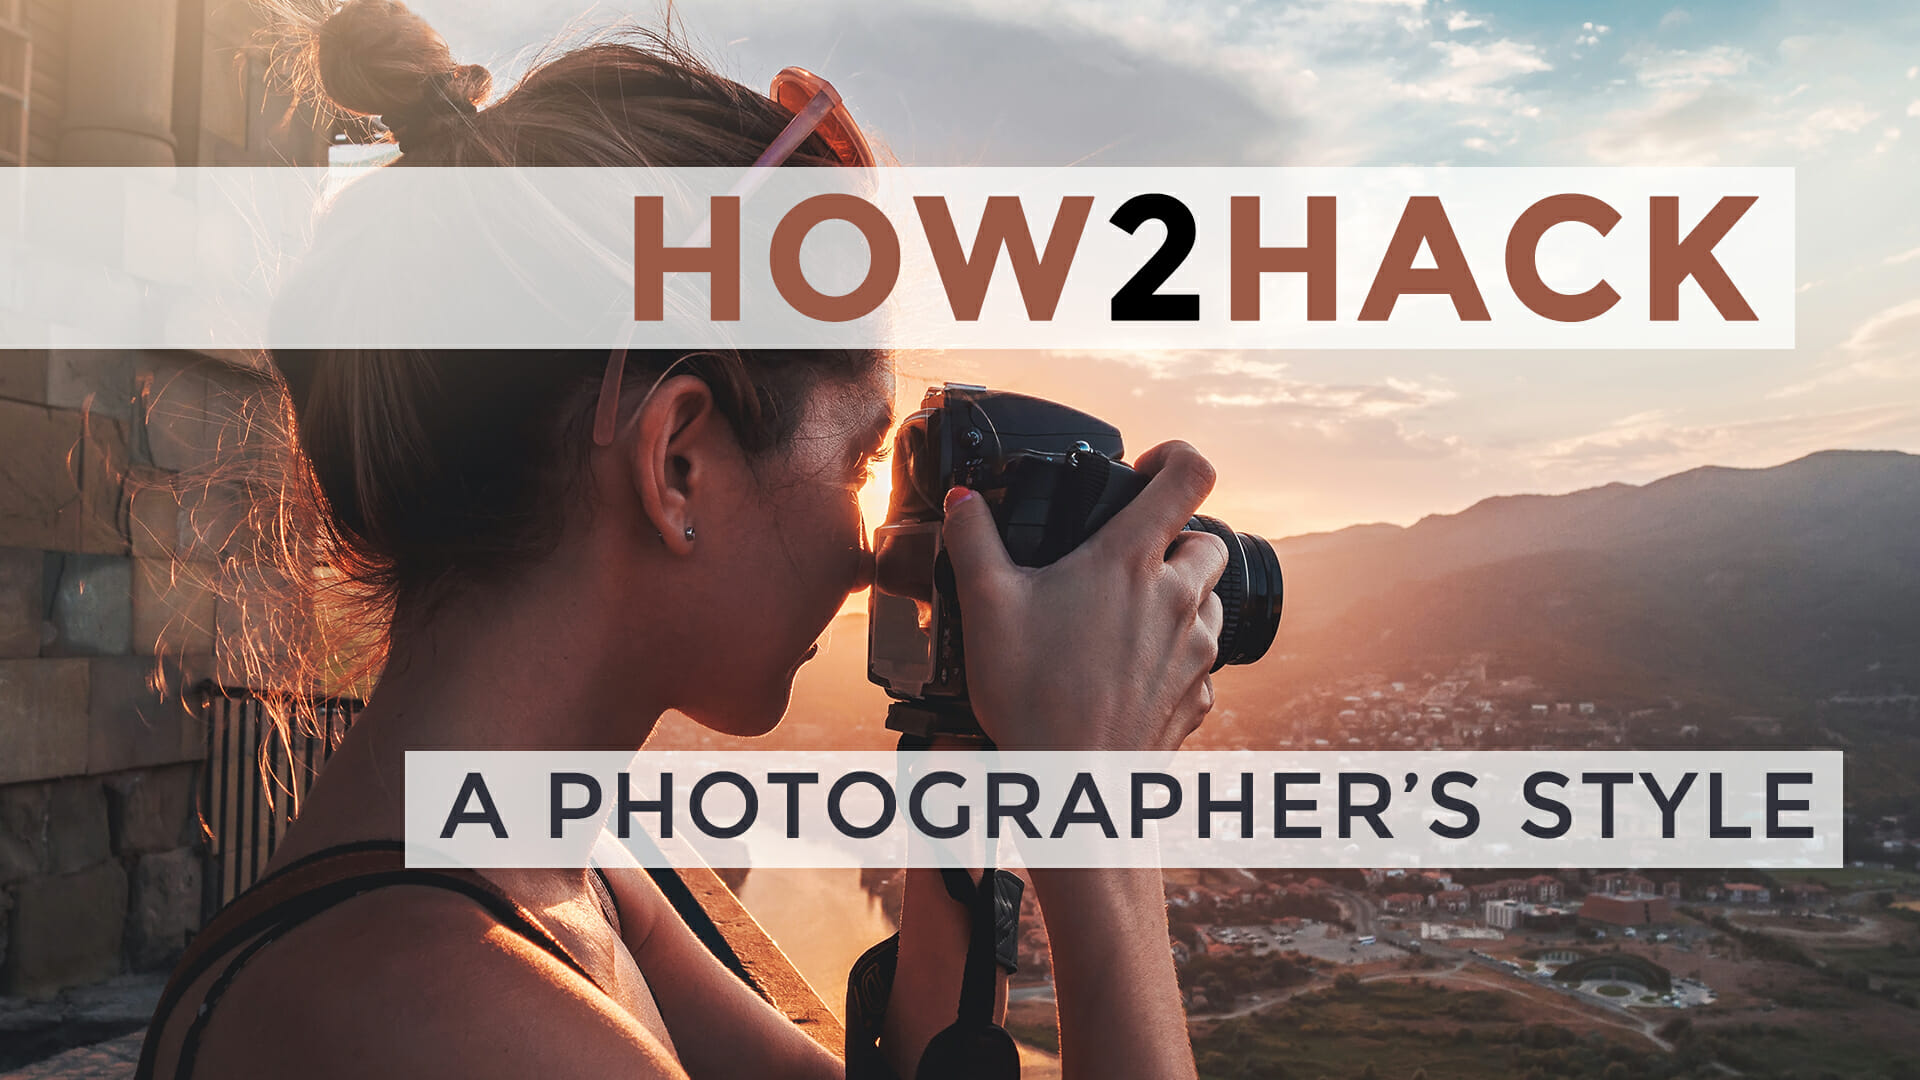 Hack a Photographer's Style